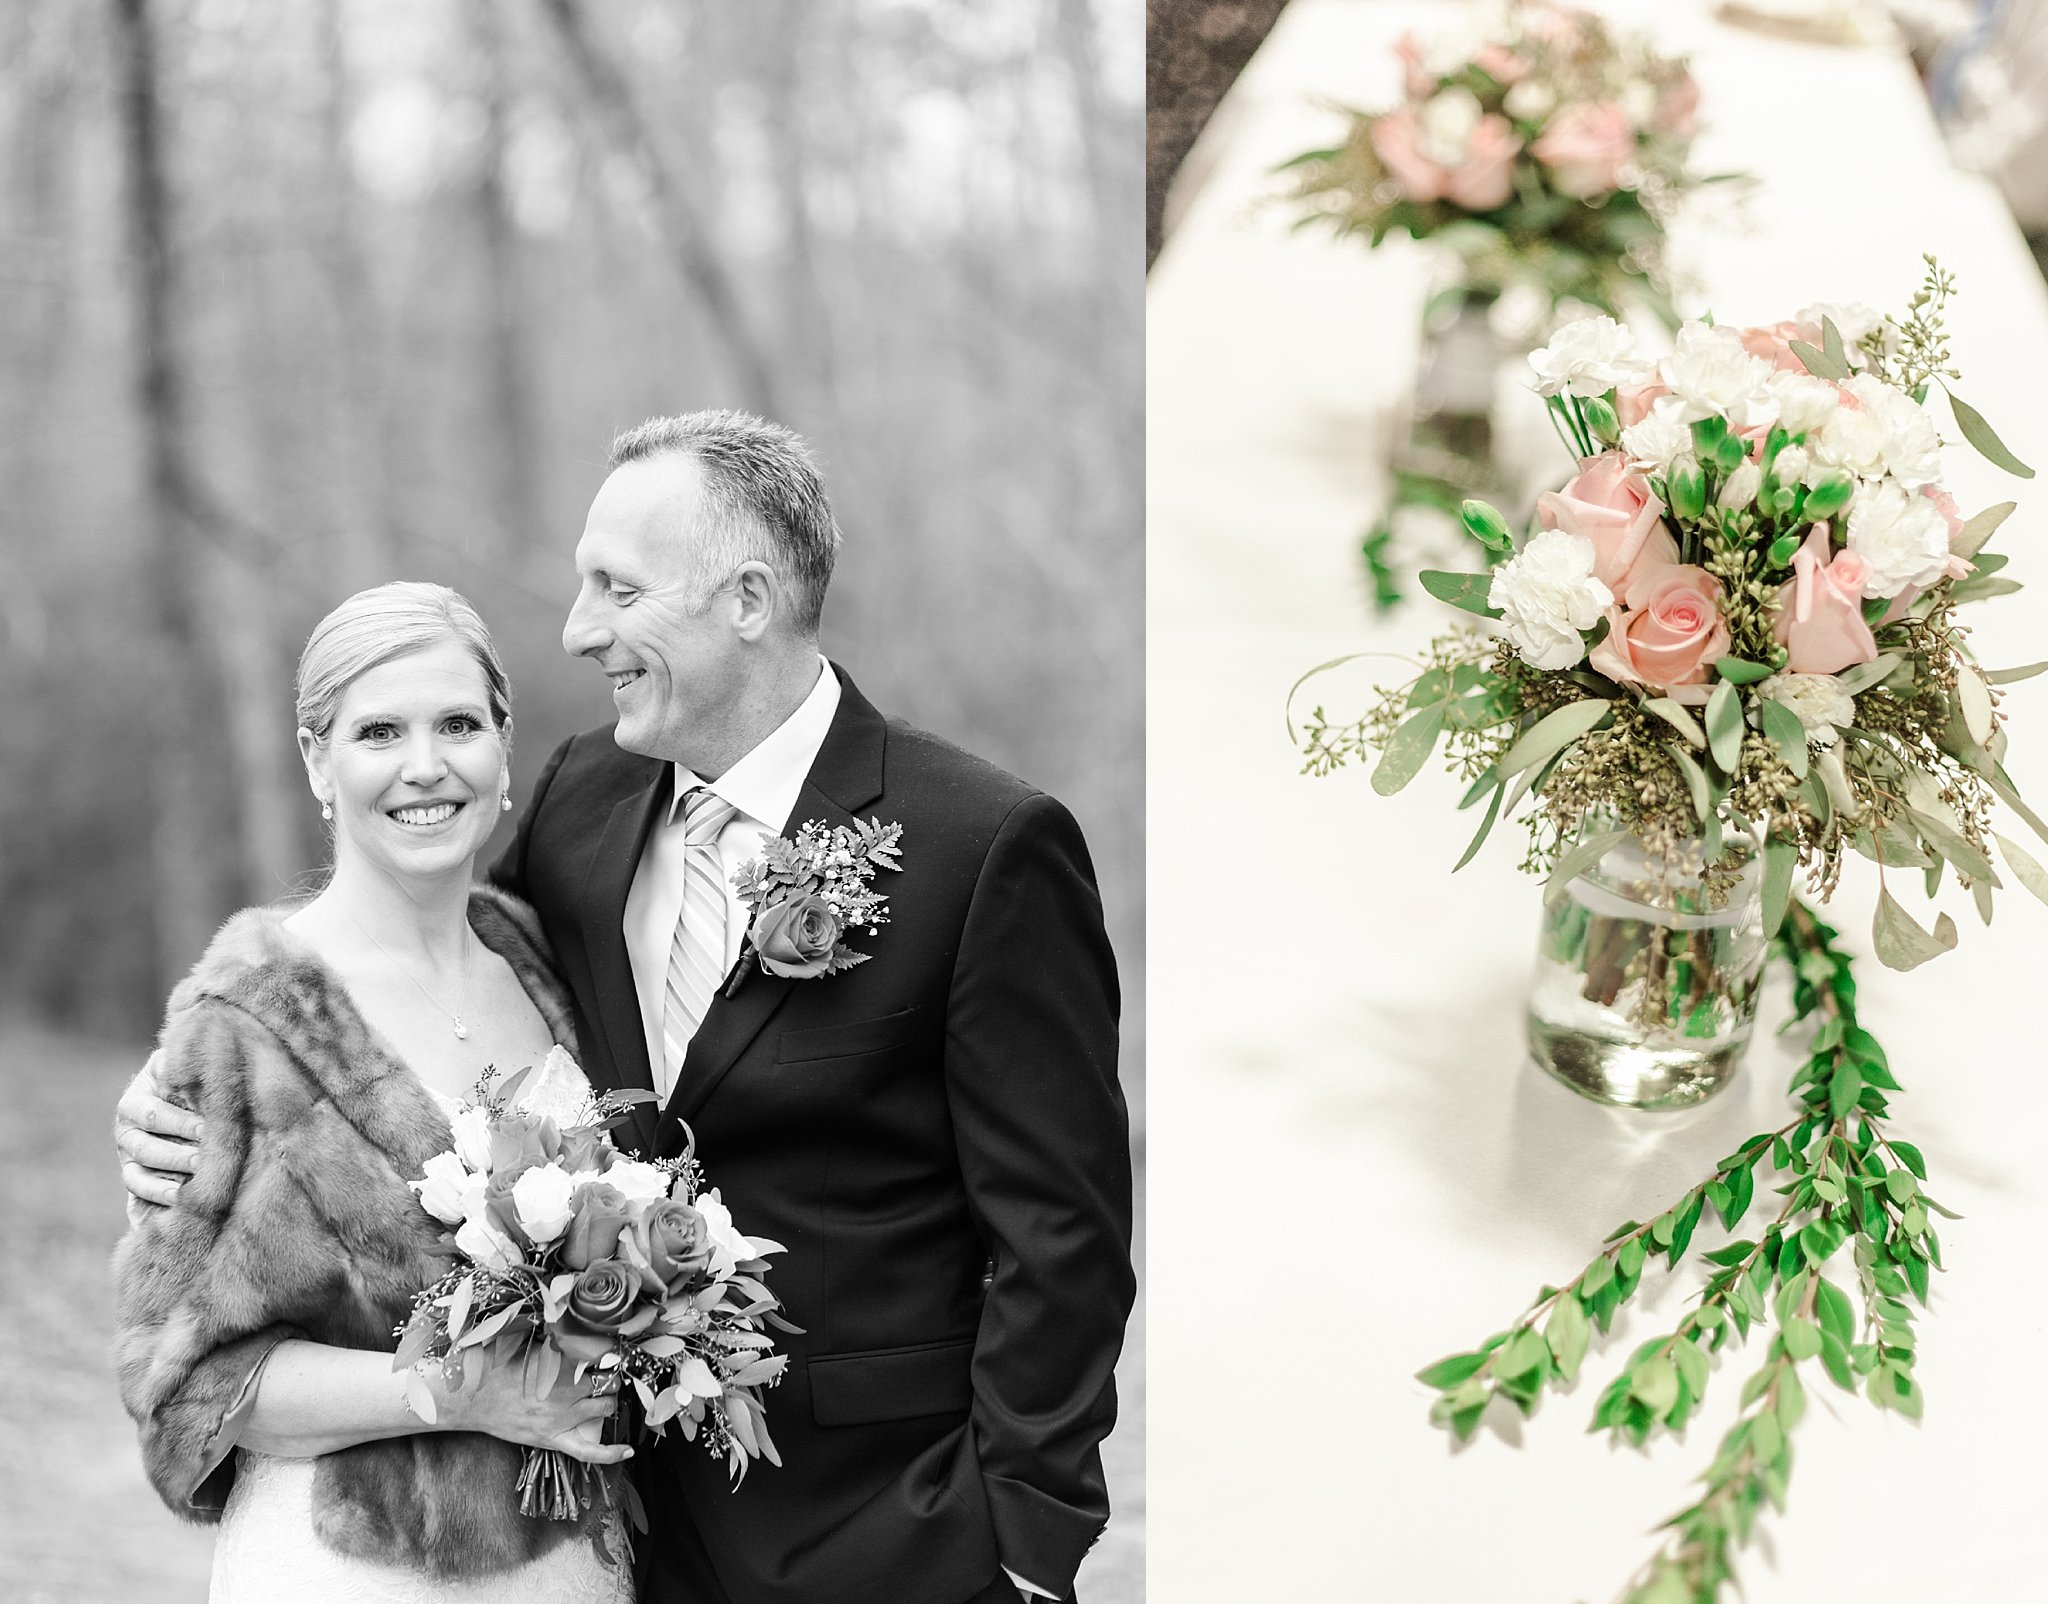 Rustic Virginia Wedding at Pocahontas State Park